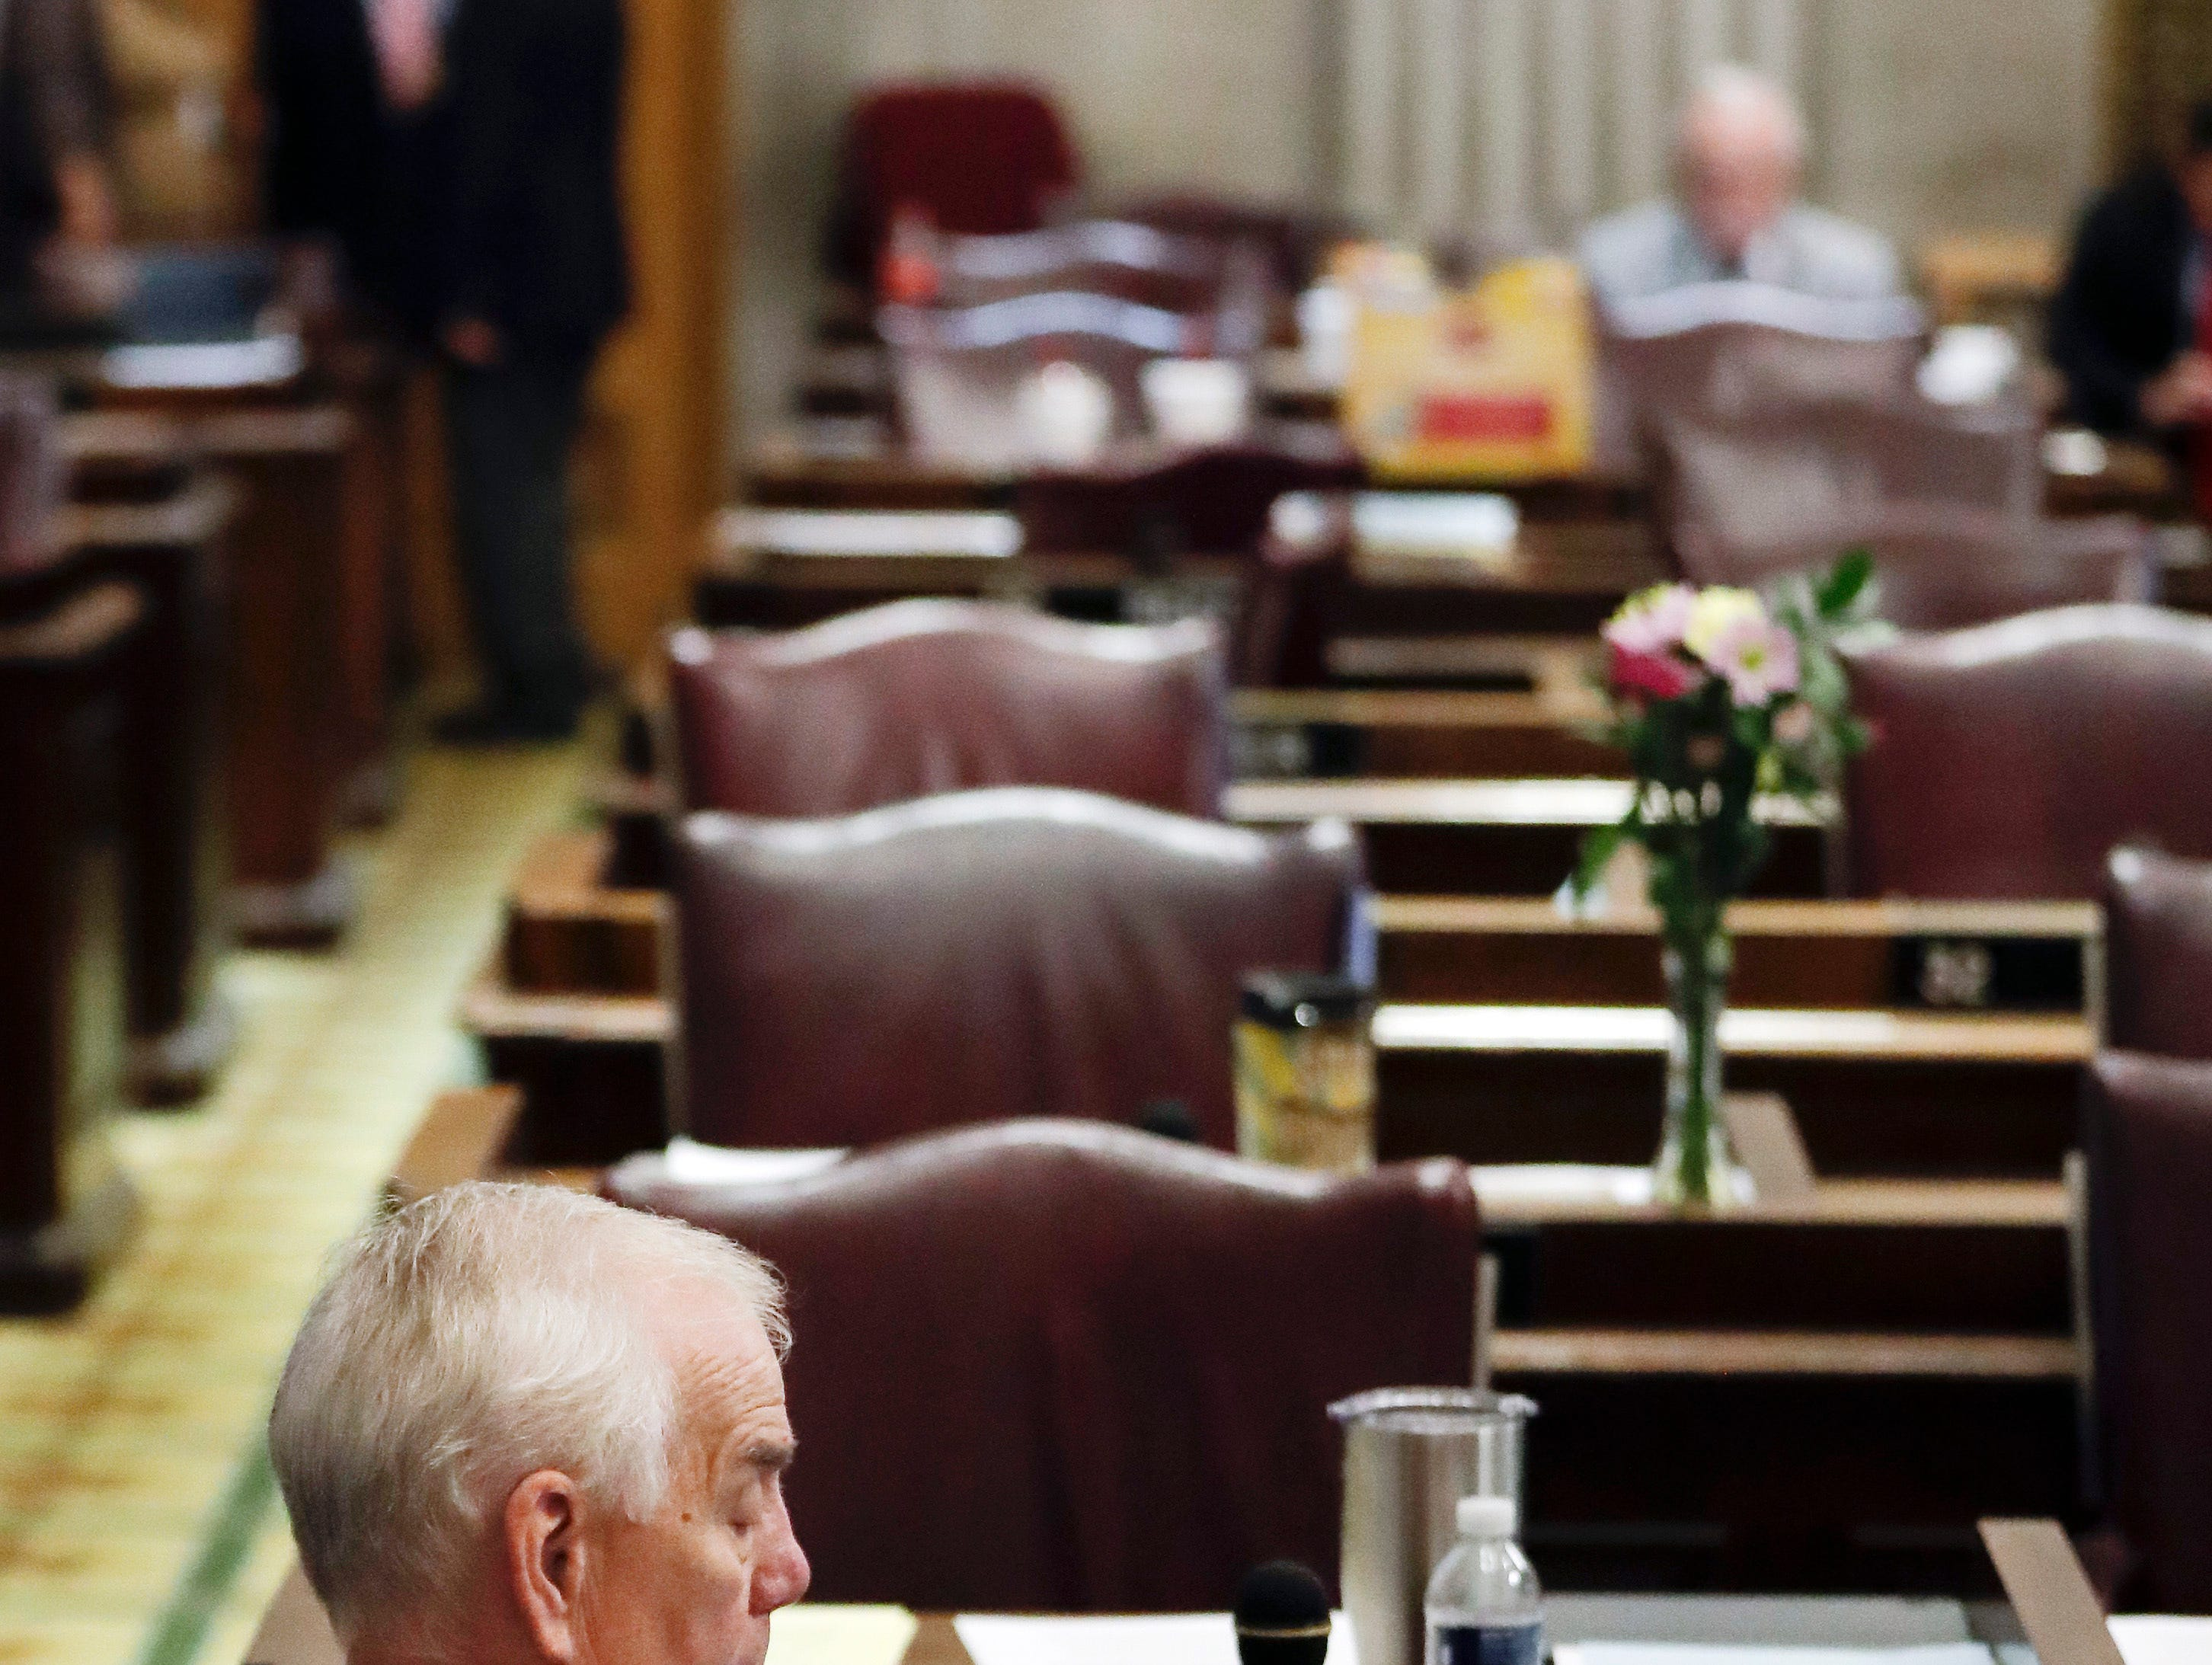 Rep. Pat Marsh, R-Shelbyville, checks his phone as he waits for the House session to resume Thursday, May 2, 2019, in Nashville, Tenn. (AP Photo/Mark Humphrey)